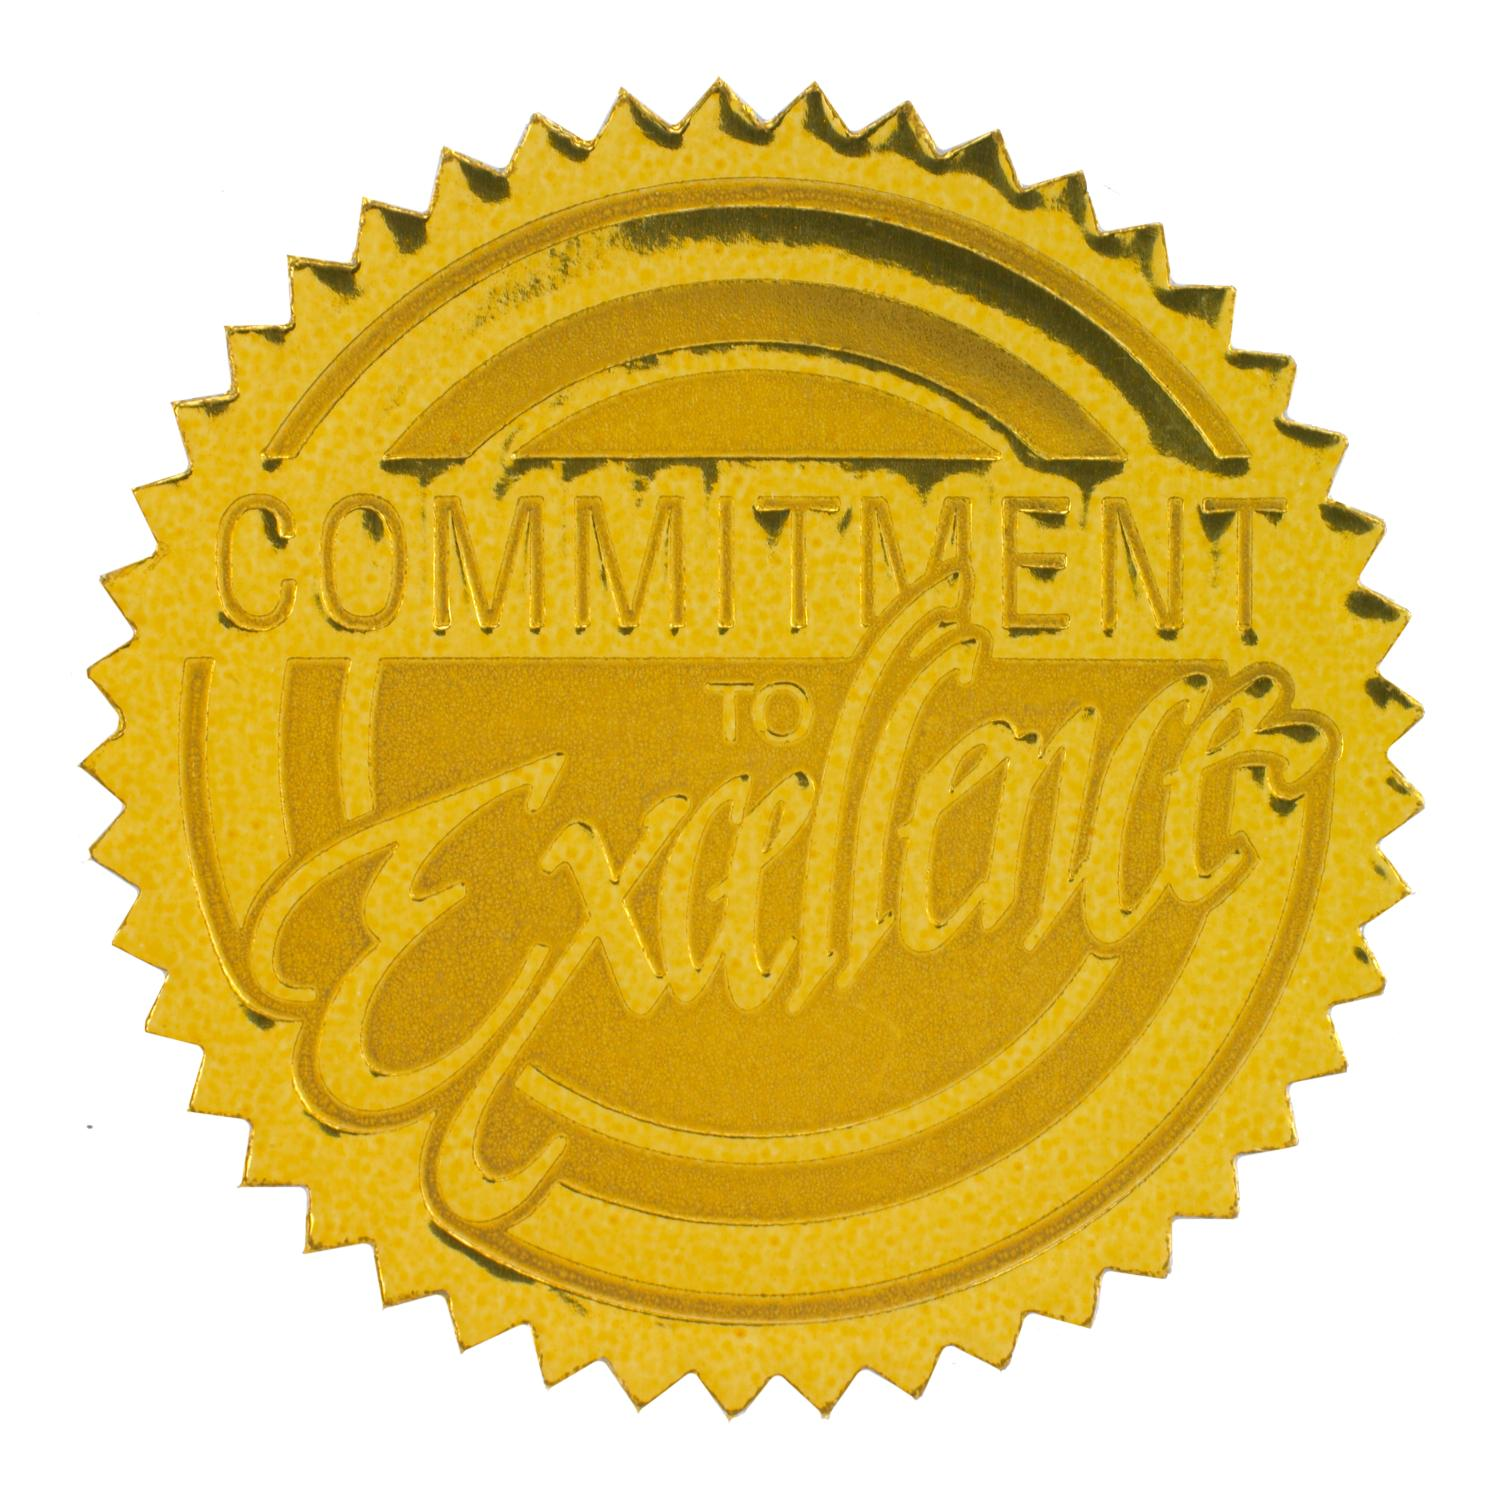 Commitment to excellence gold foil certificate seals certificate read all 2 reviews commitment to excellence gold foil certificate seals yadclub Gallery